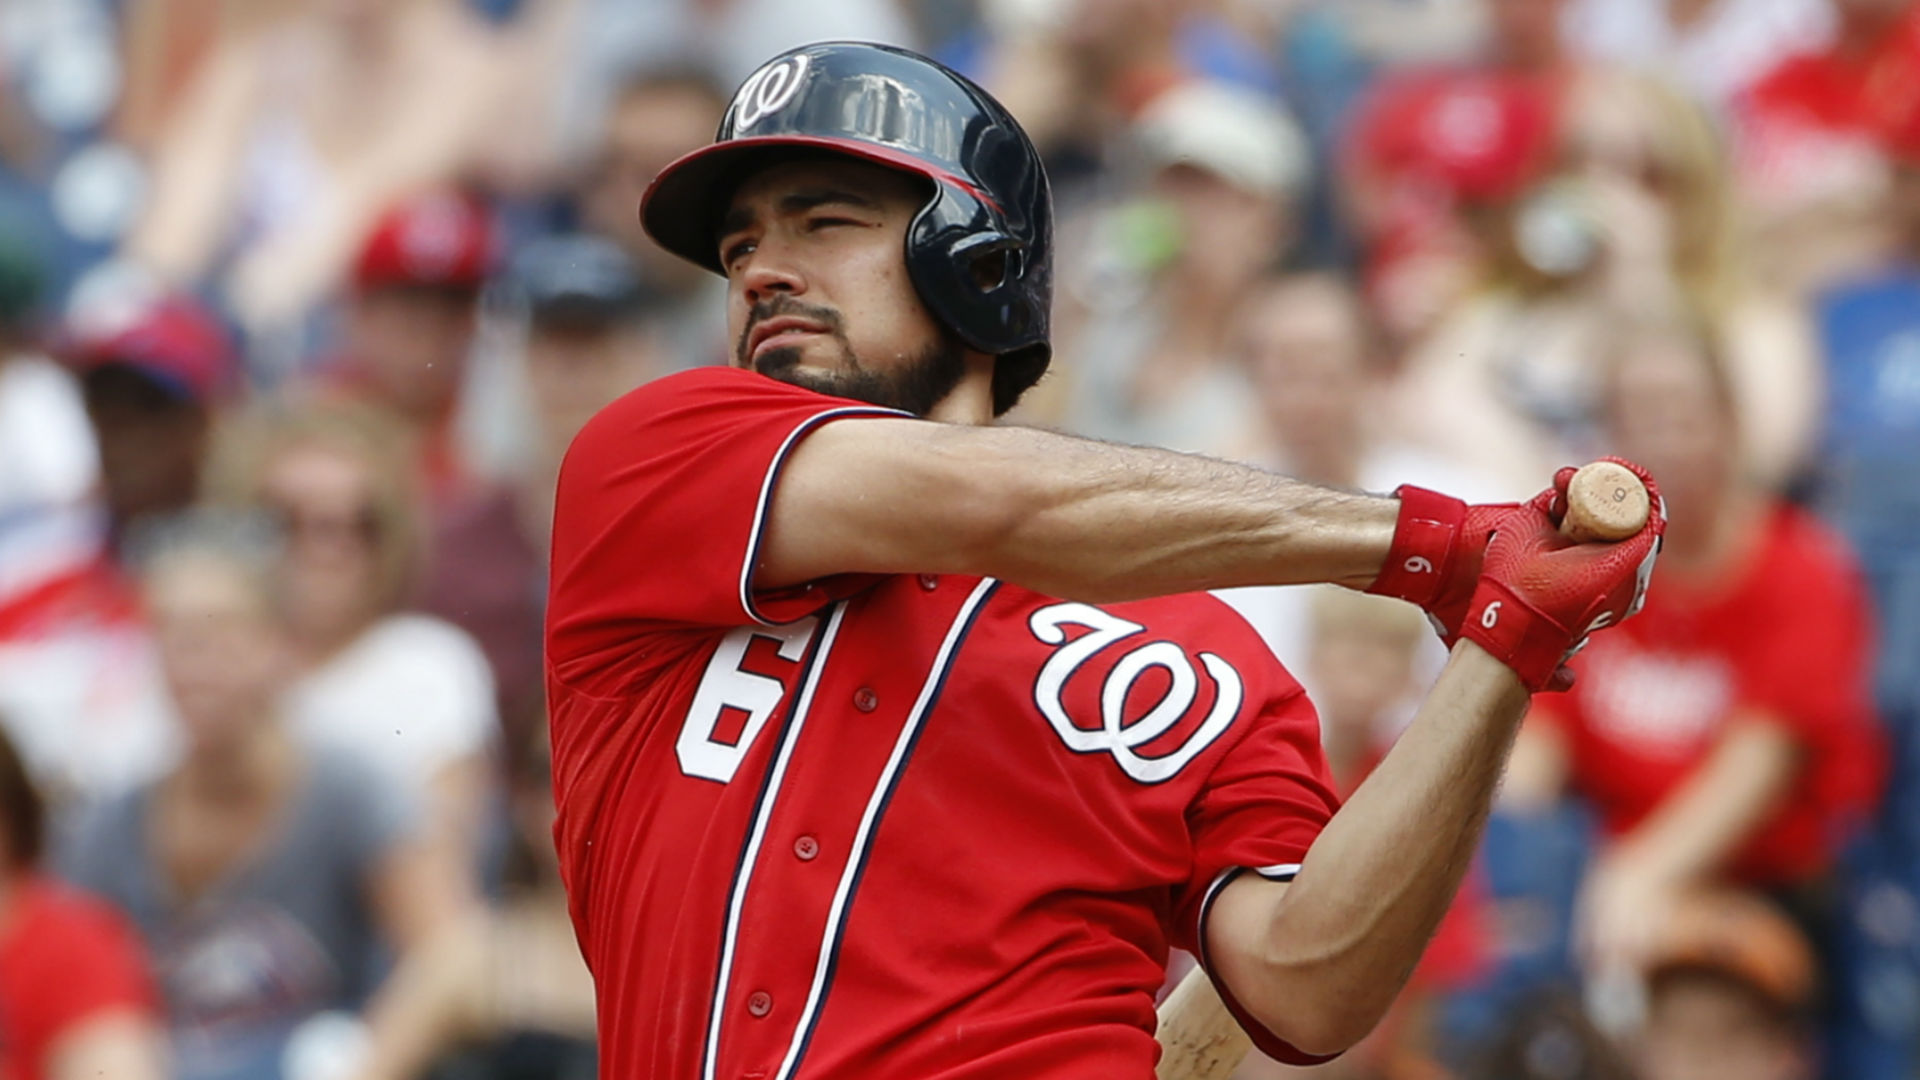 Second base rankings: Rendon continues climb